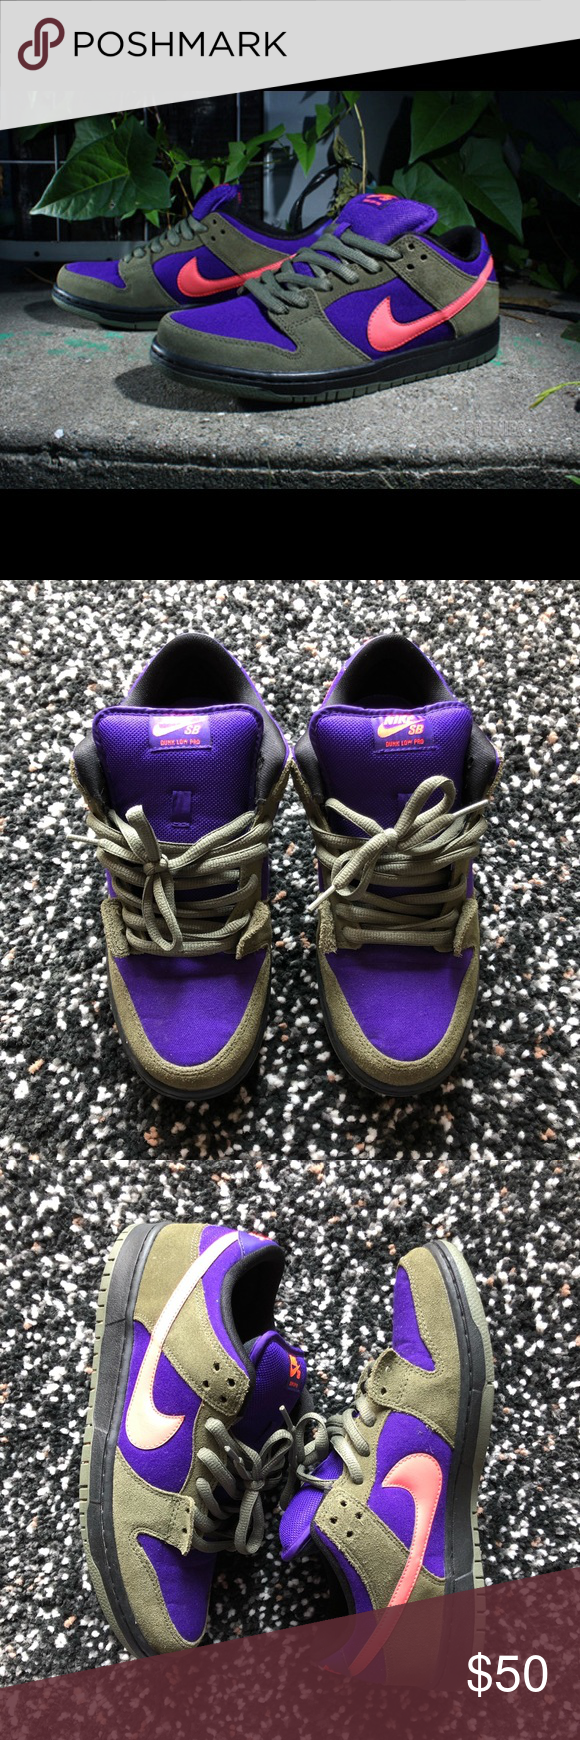 huge selection of befe1 f1c5a Nike Dunk SB ACG Gently worn without box Condition  9 10 This version of  the popular Nike SB Dunk Low has adjusted the bar utilizing this super  colorful ...